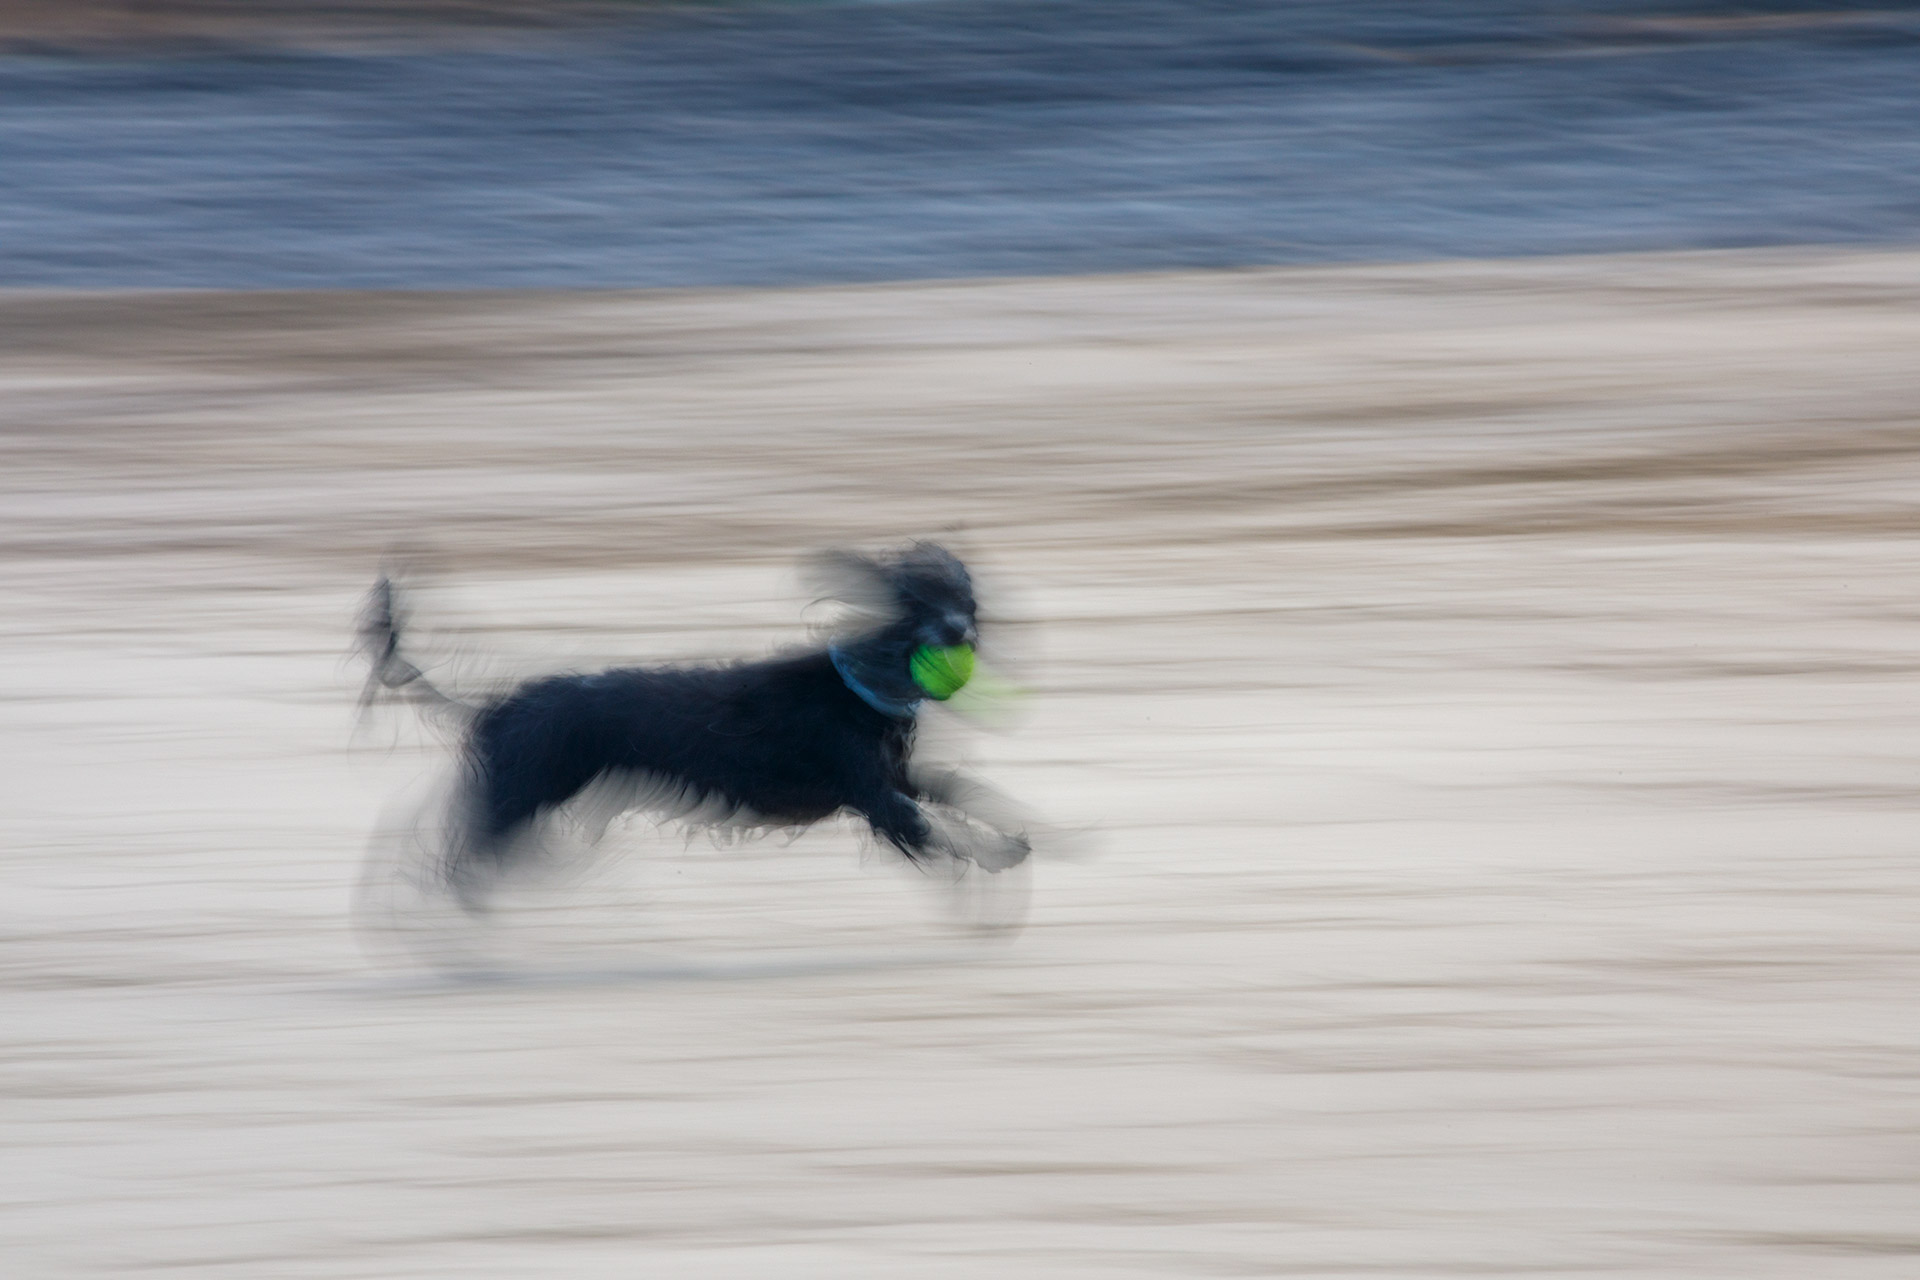 Dog running on La Garita beach Arrieta